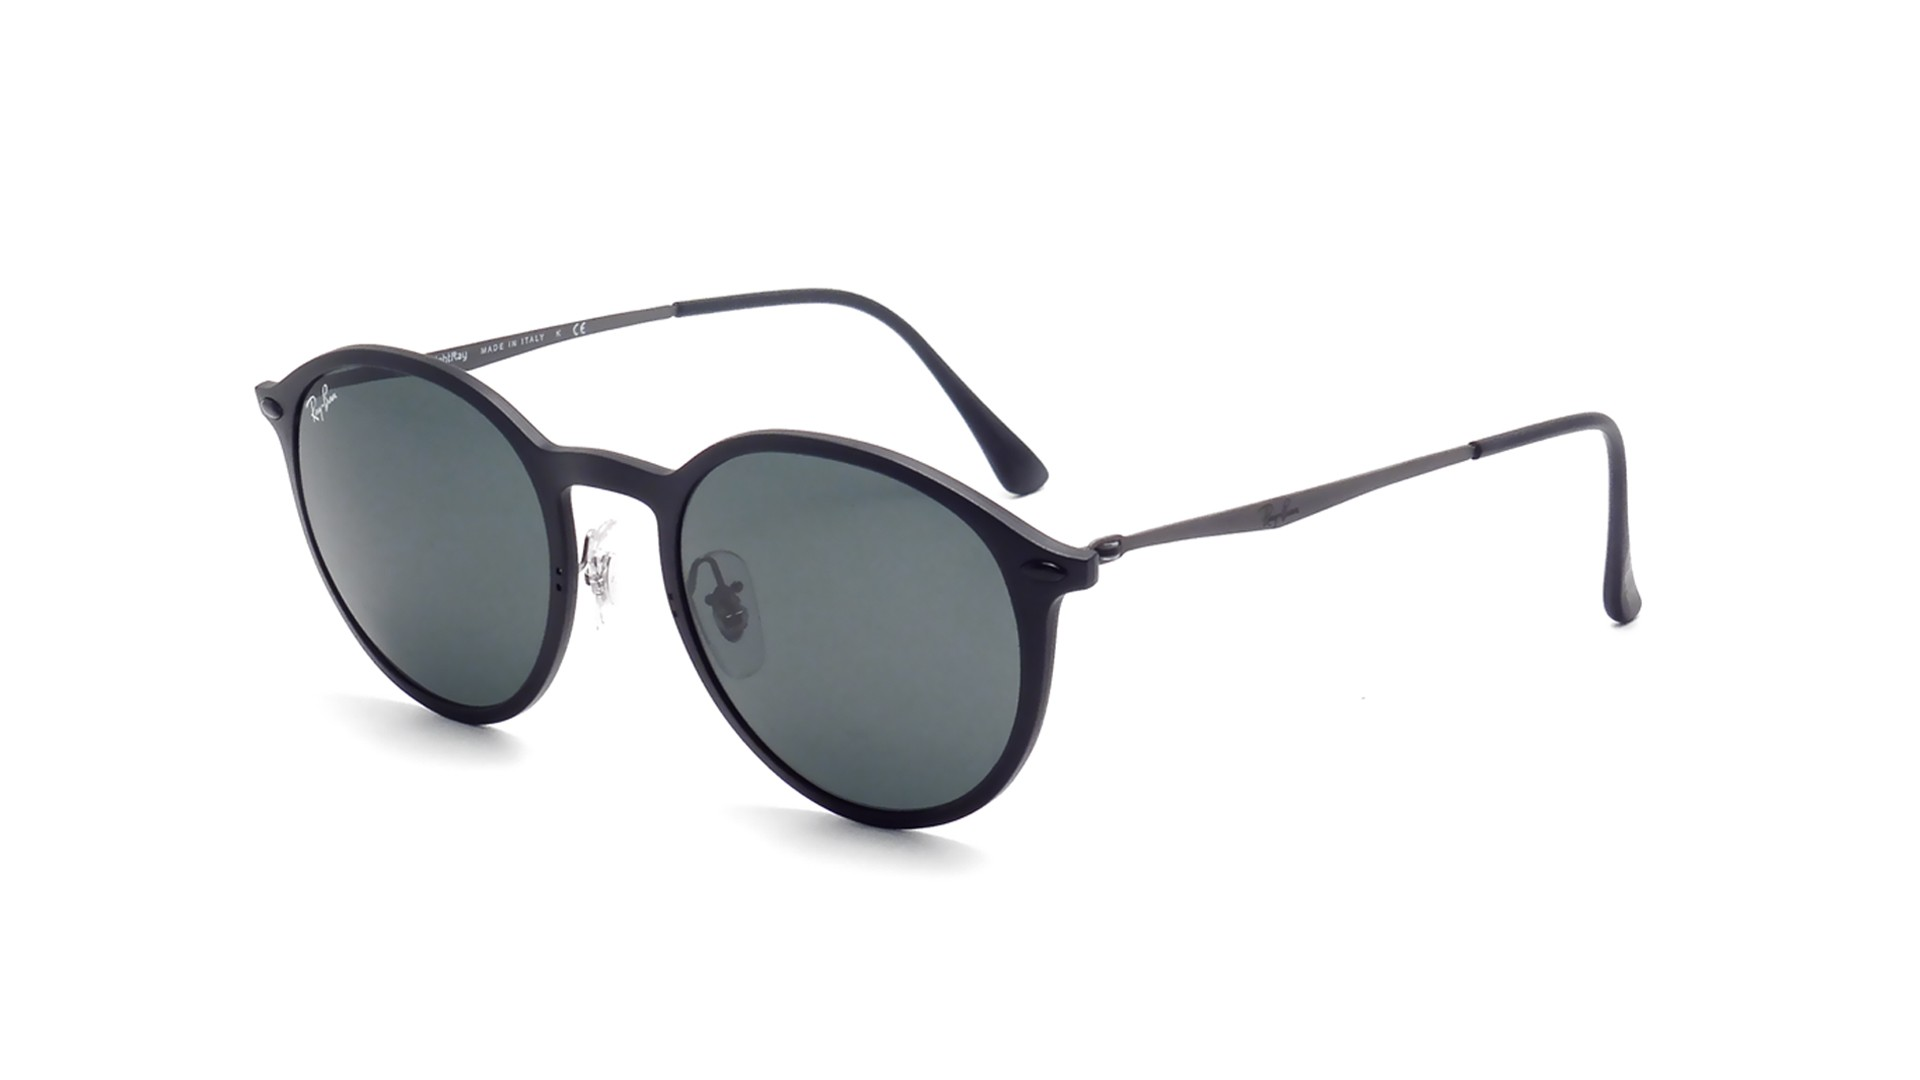 a1f89024bd ... reduced sunglasses ray ban round light ray black rb4224 601s71 49 20  medium 9bced 4737d